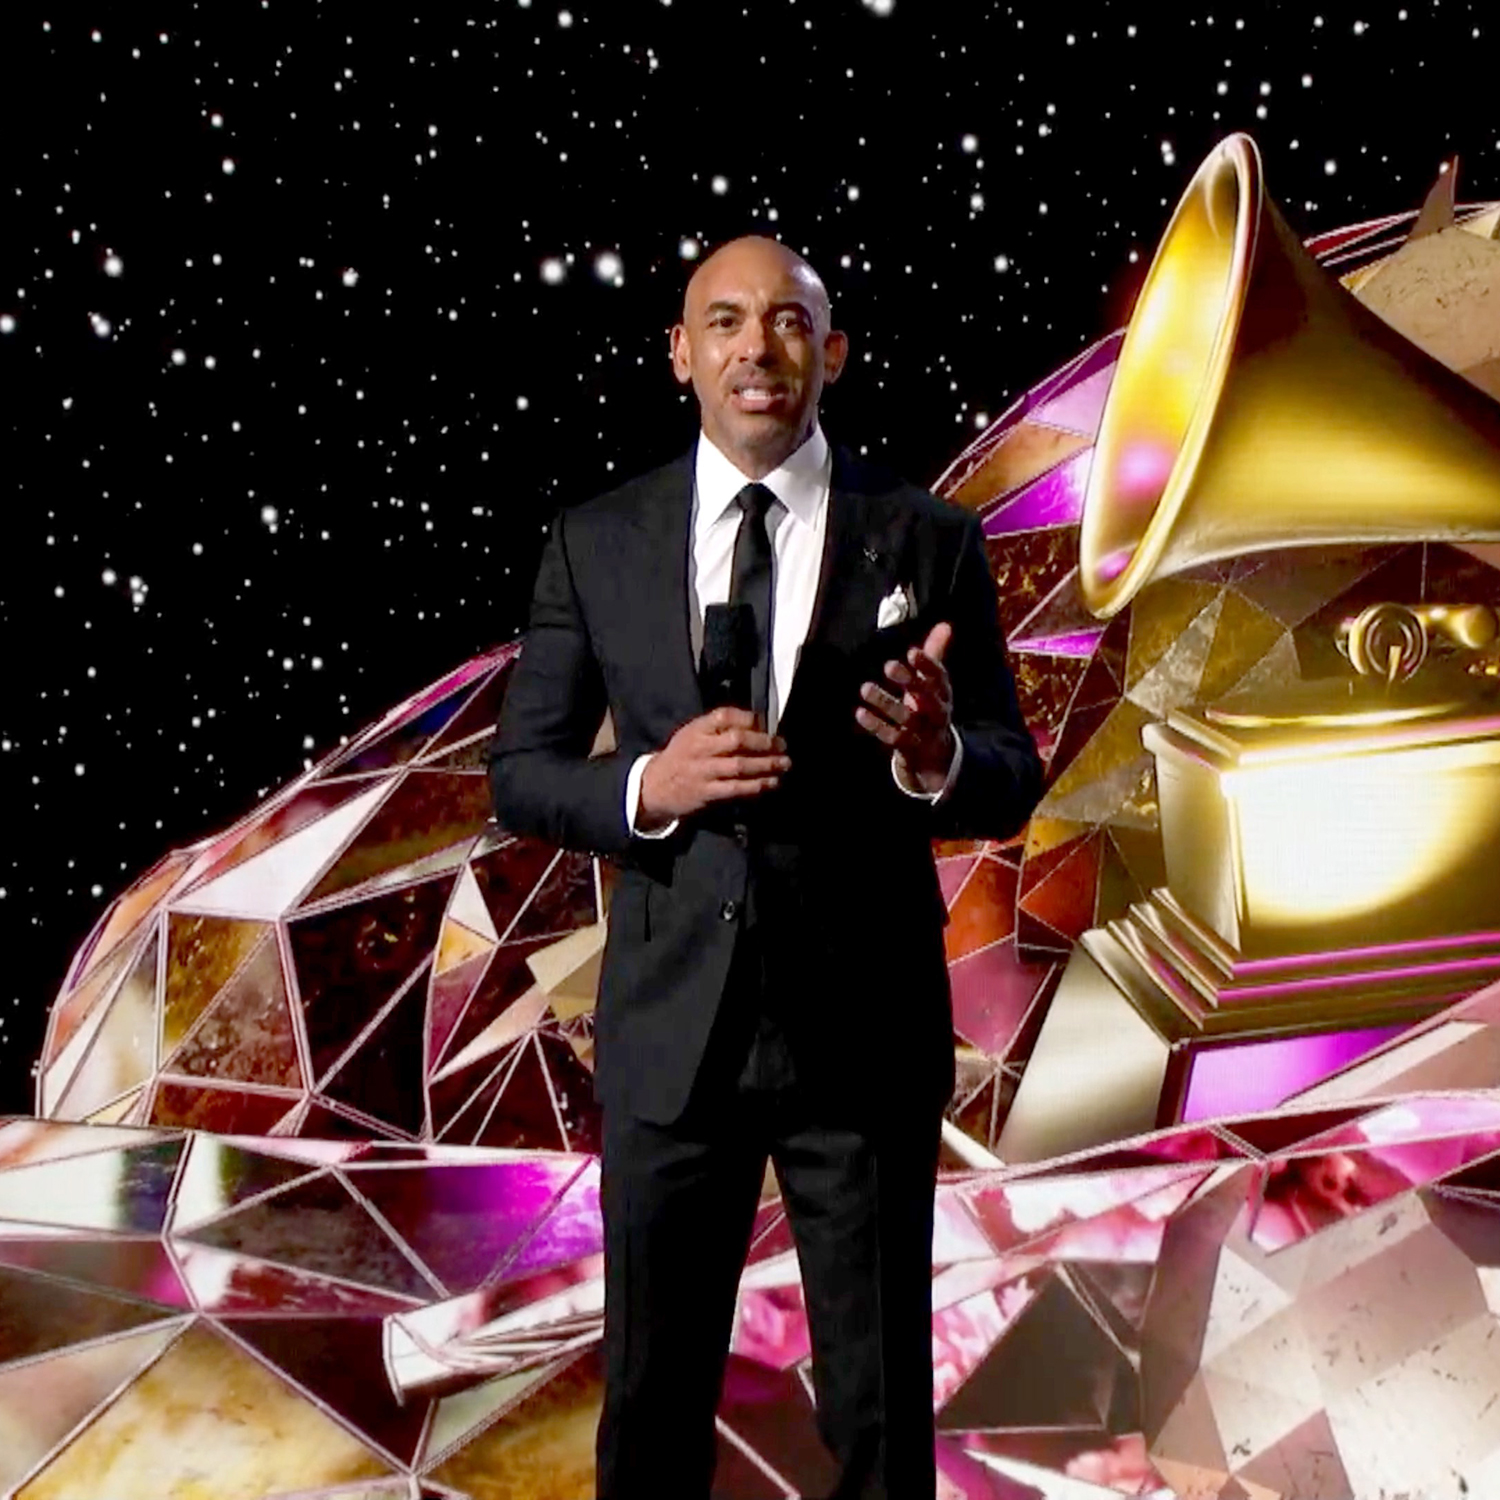 UNSPECIFIED: In this screengrab released on March 14, Recording Academy Chair and Interim President/CEO Harvey Mason jr. speaks onstage during the 63rd Annual GRAMMY Awards Premiere Ceremony broadcast on March 14, 2021. (Photo by Rich Fury/Getty Images The Recording Academy)